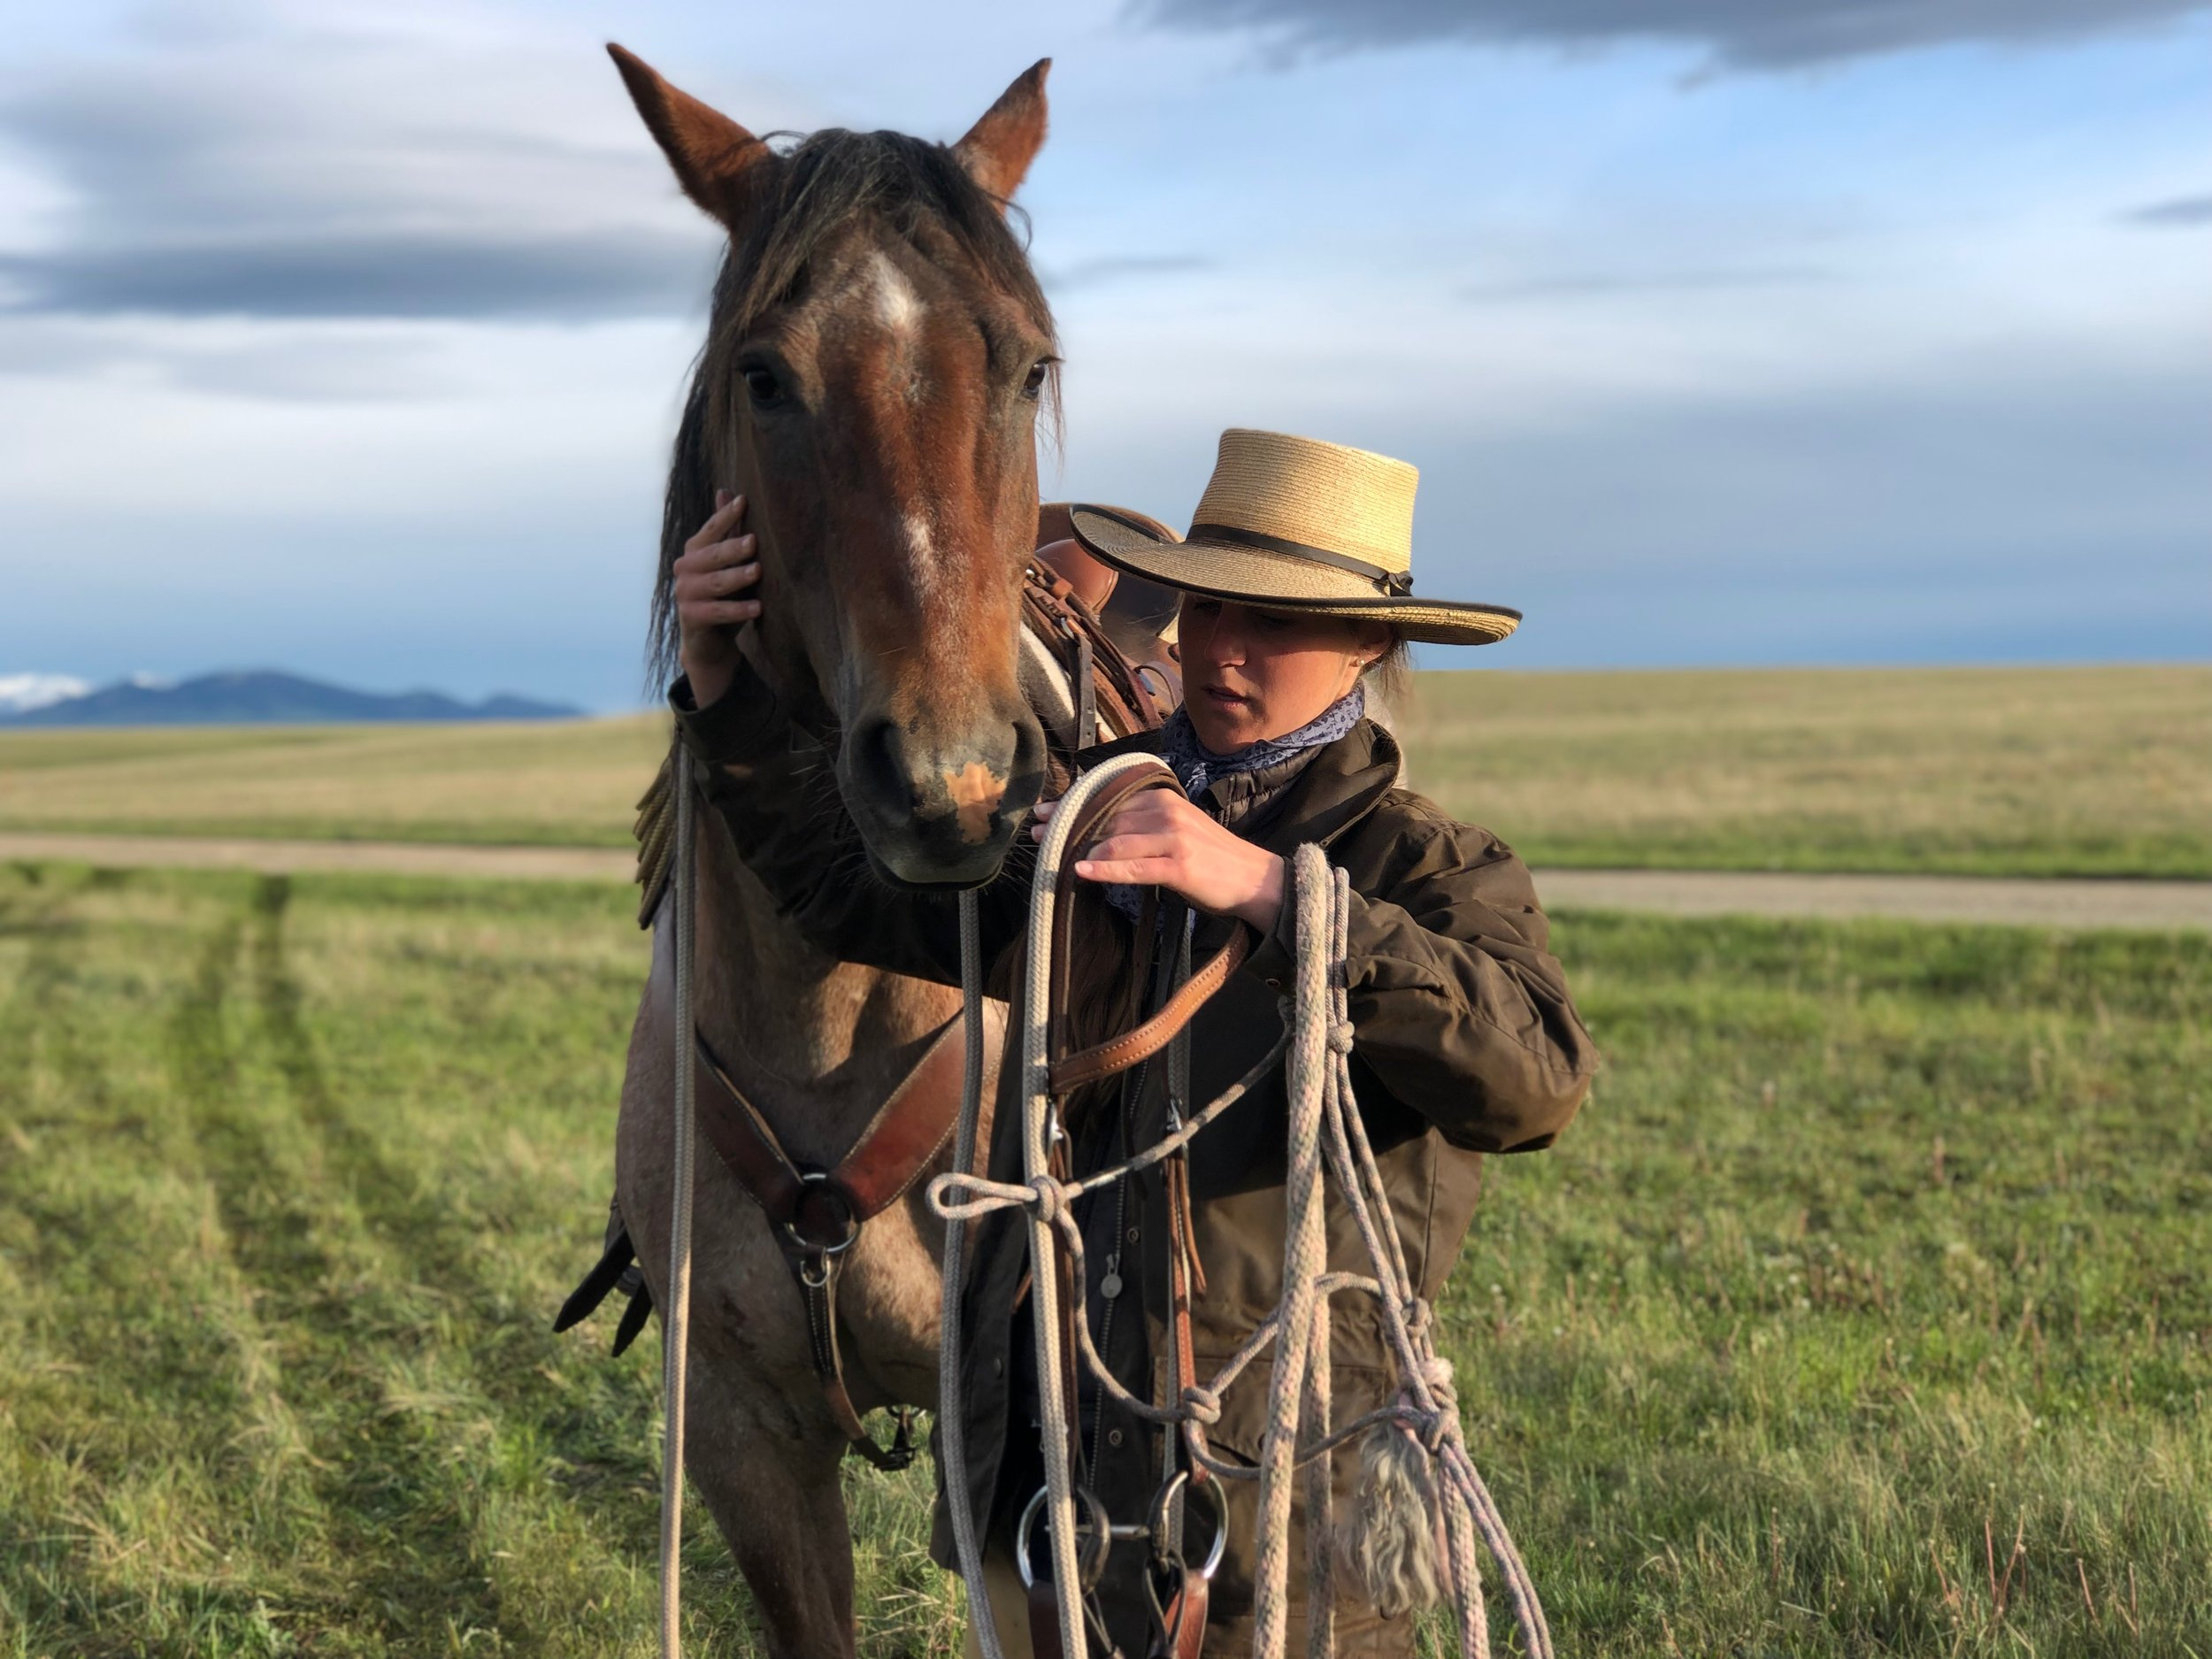 Getting ready to gather pairs before branding (Photographer: Hilary Zaranek-Anderson)